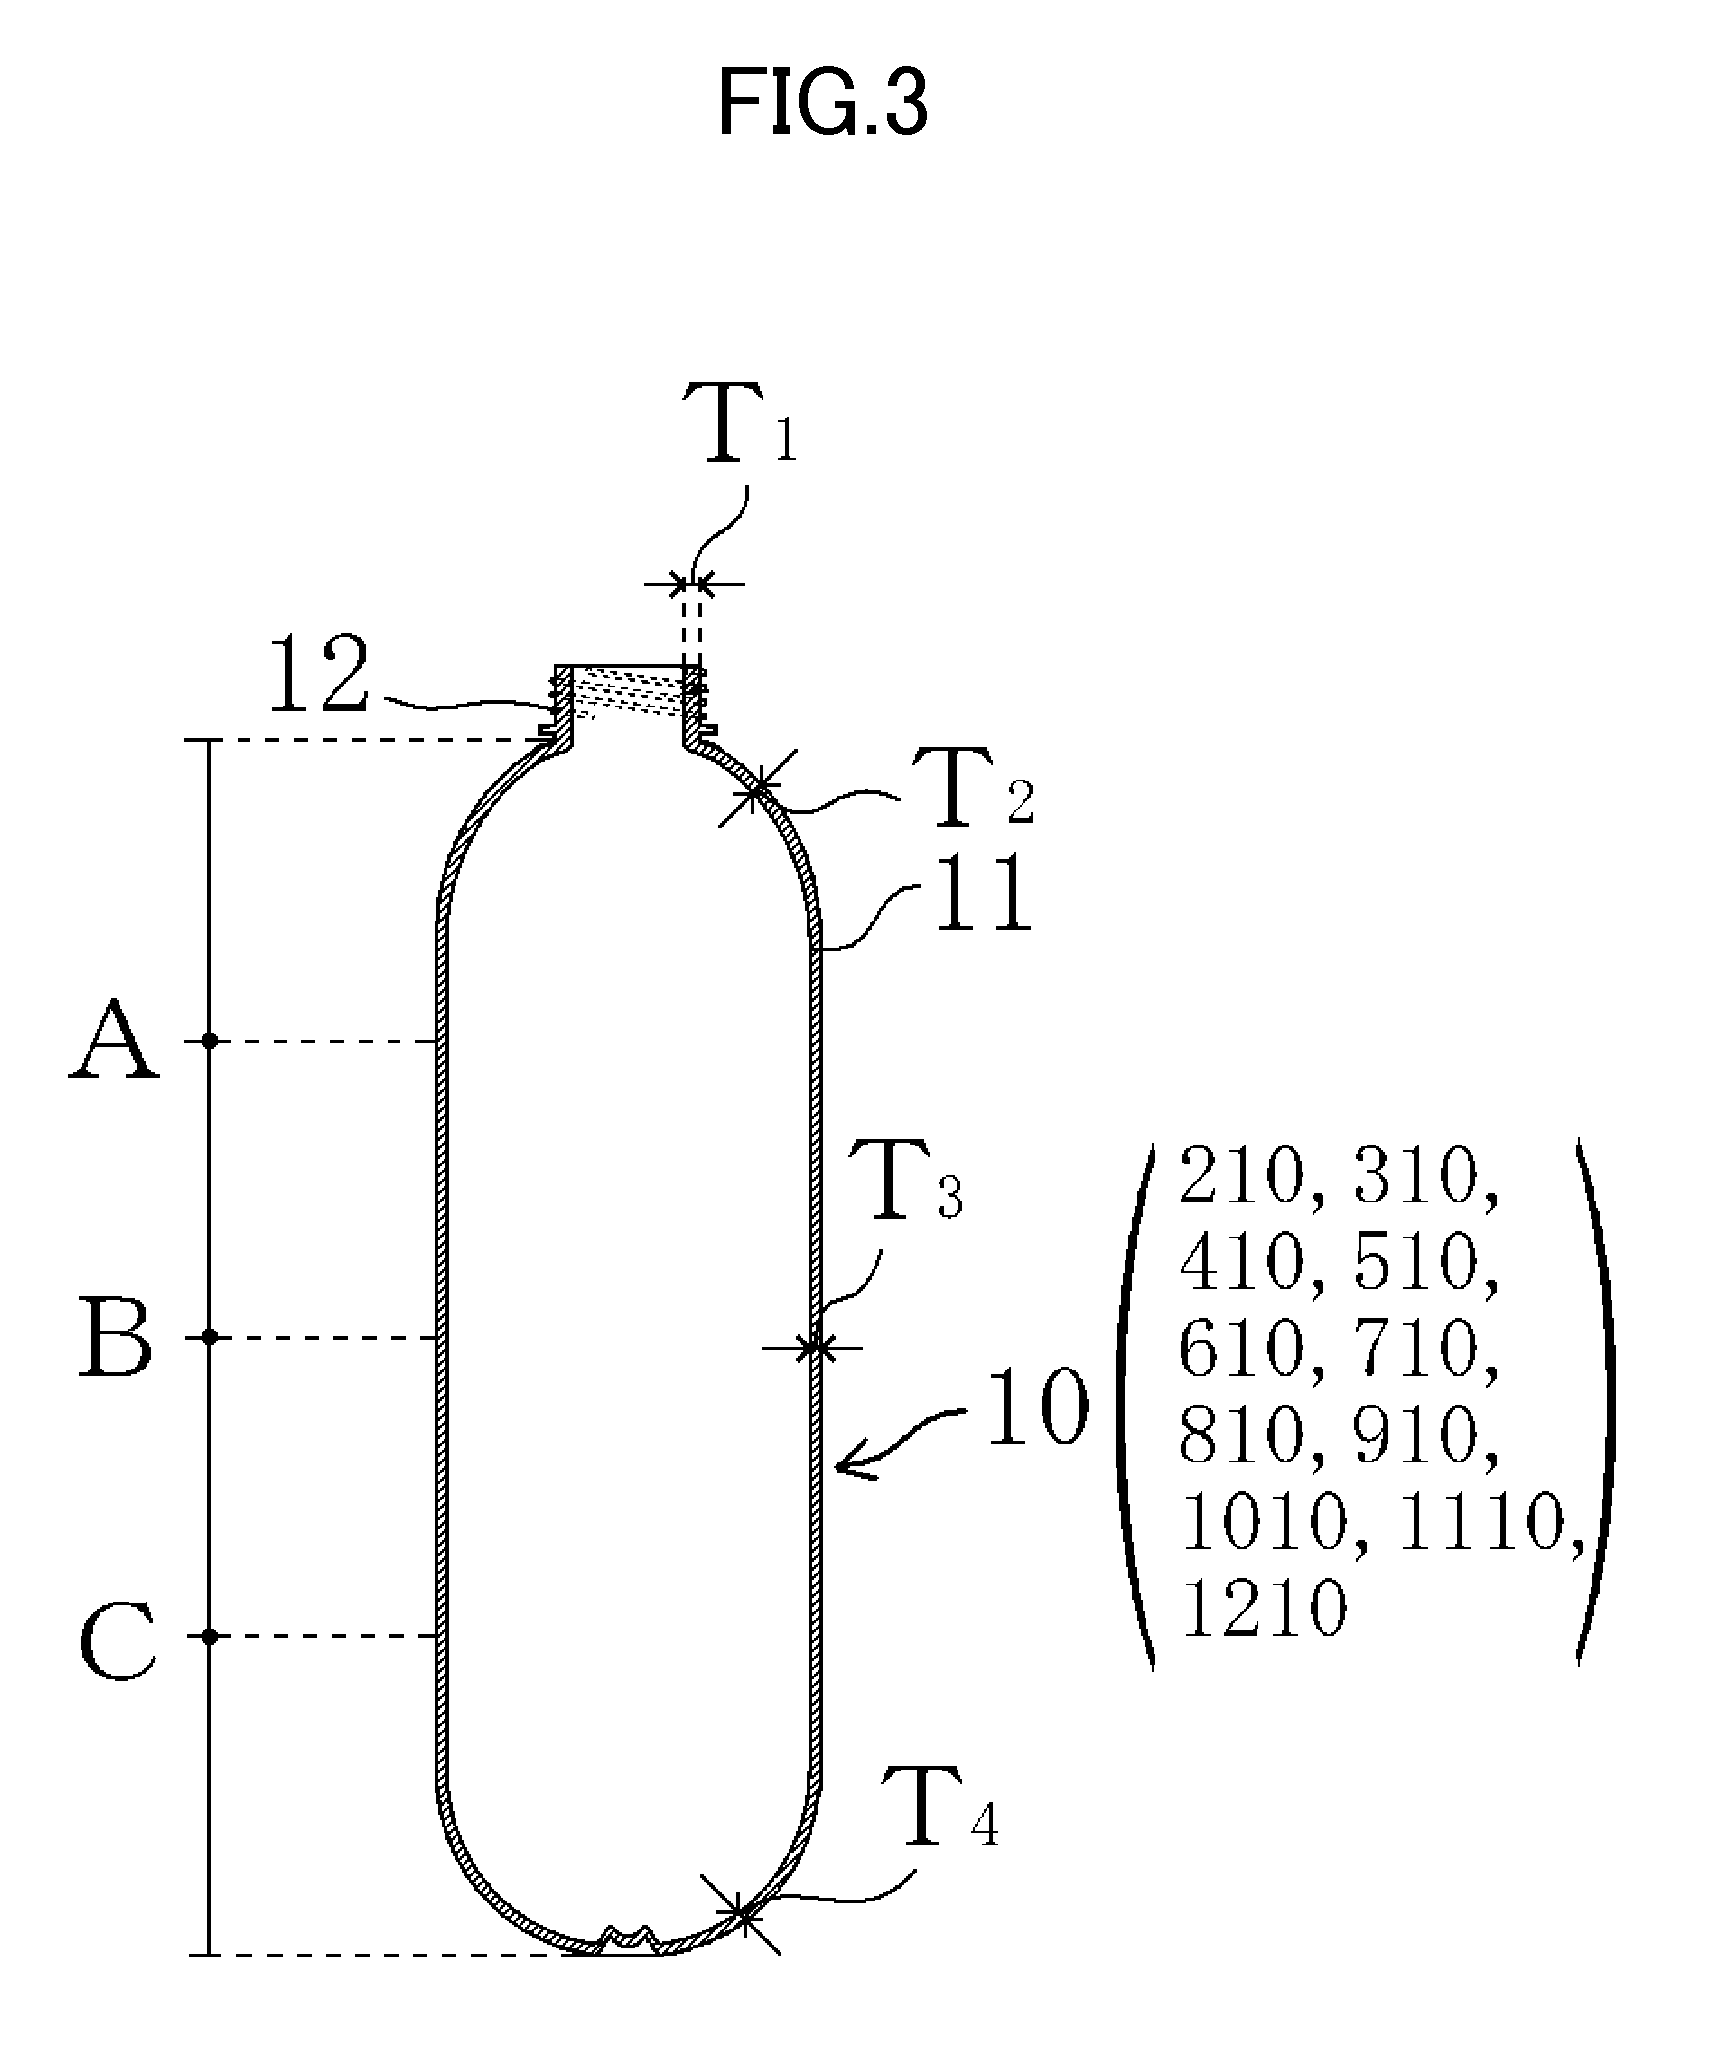 Fire extinguisher drawing symbol ma fire extinguisher drawing symbol patent ep2351601a1 fire fire extinguisher drawing symbol buycottarizona